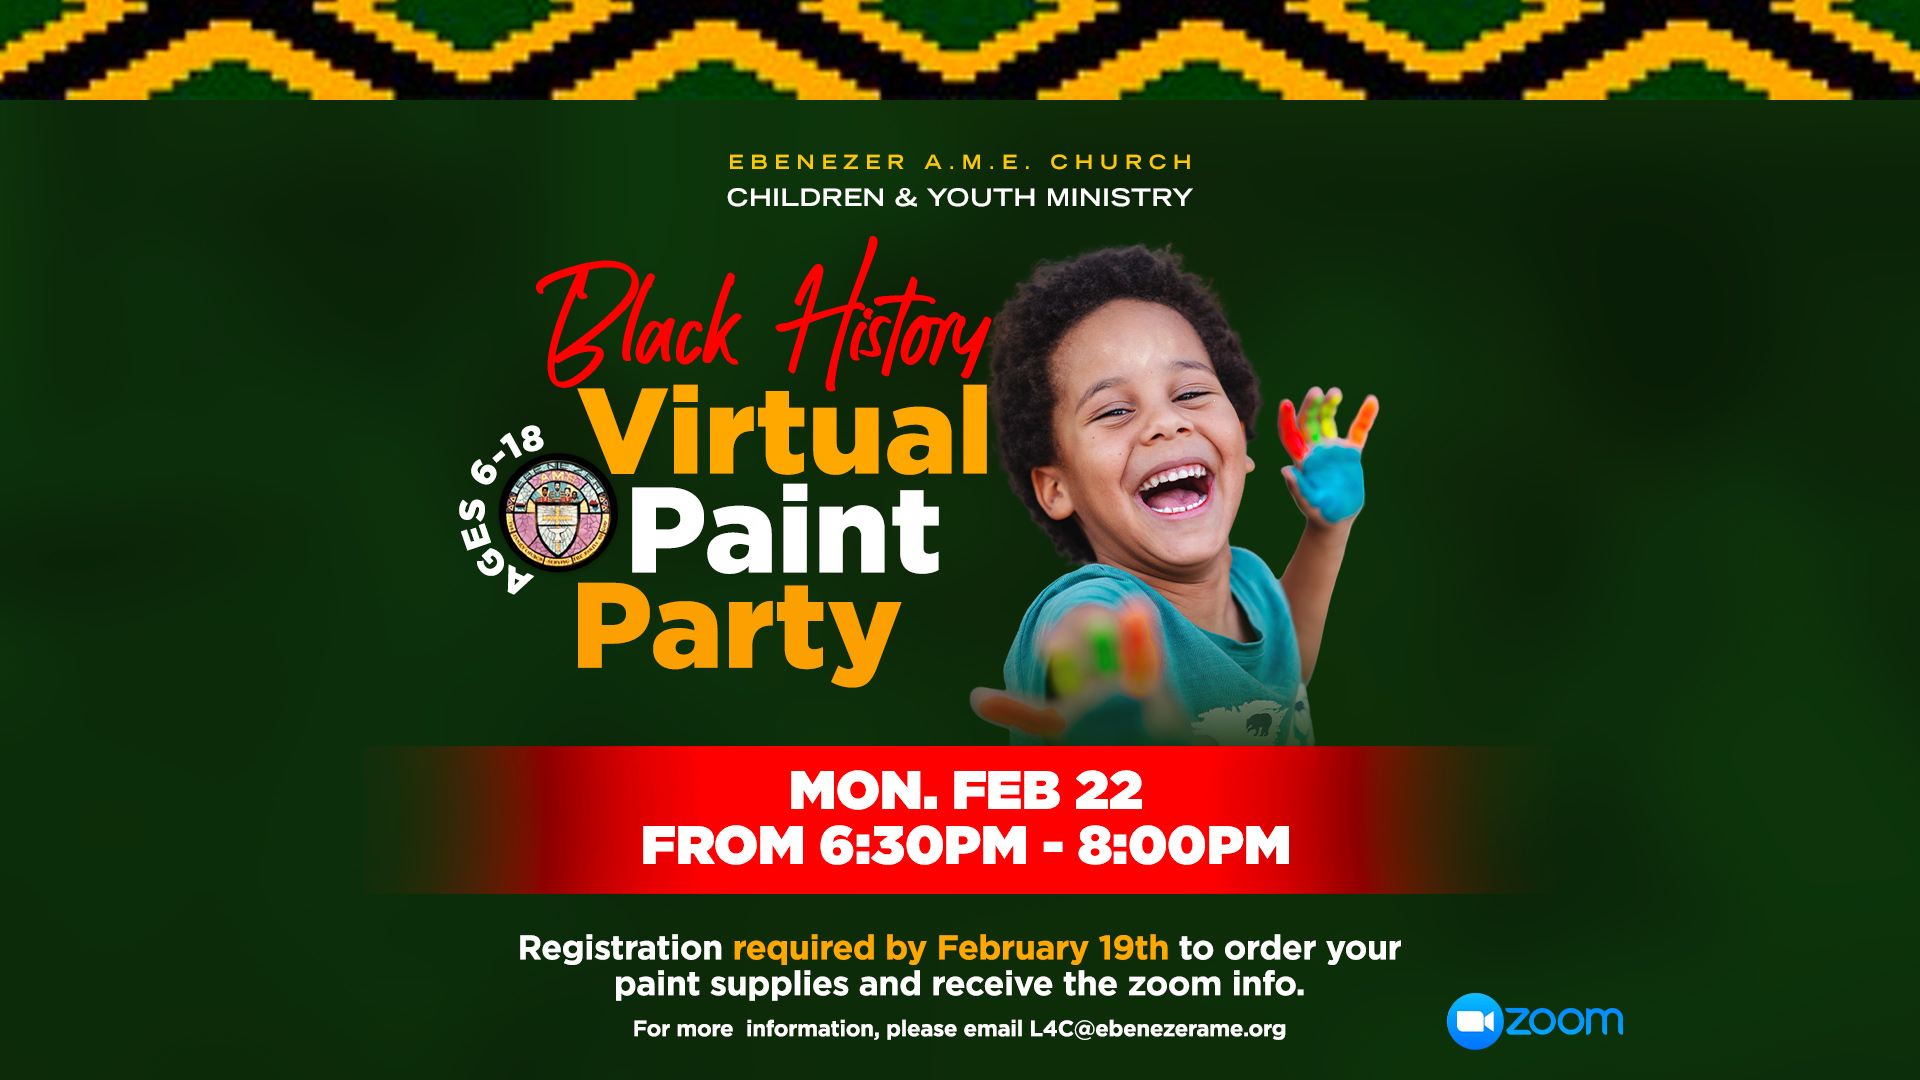 Children and Youth Paint Party